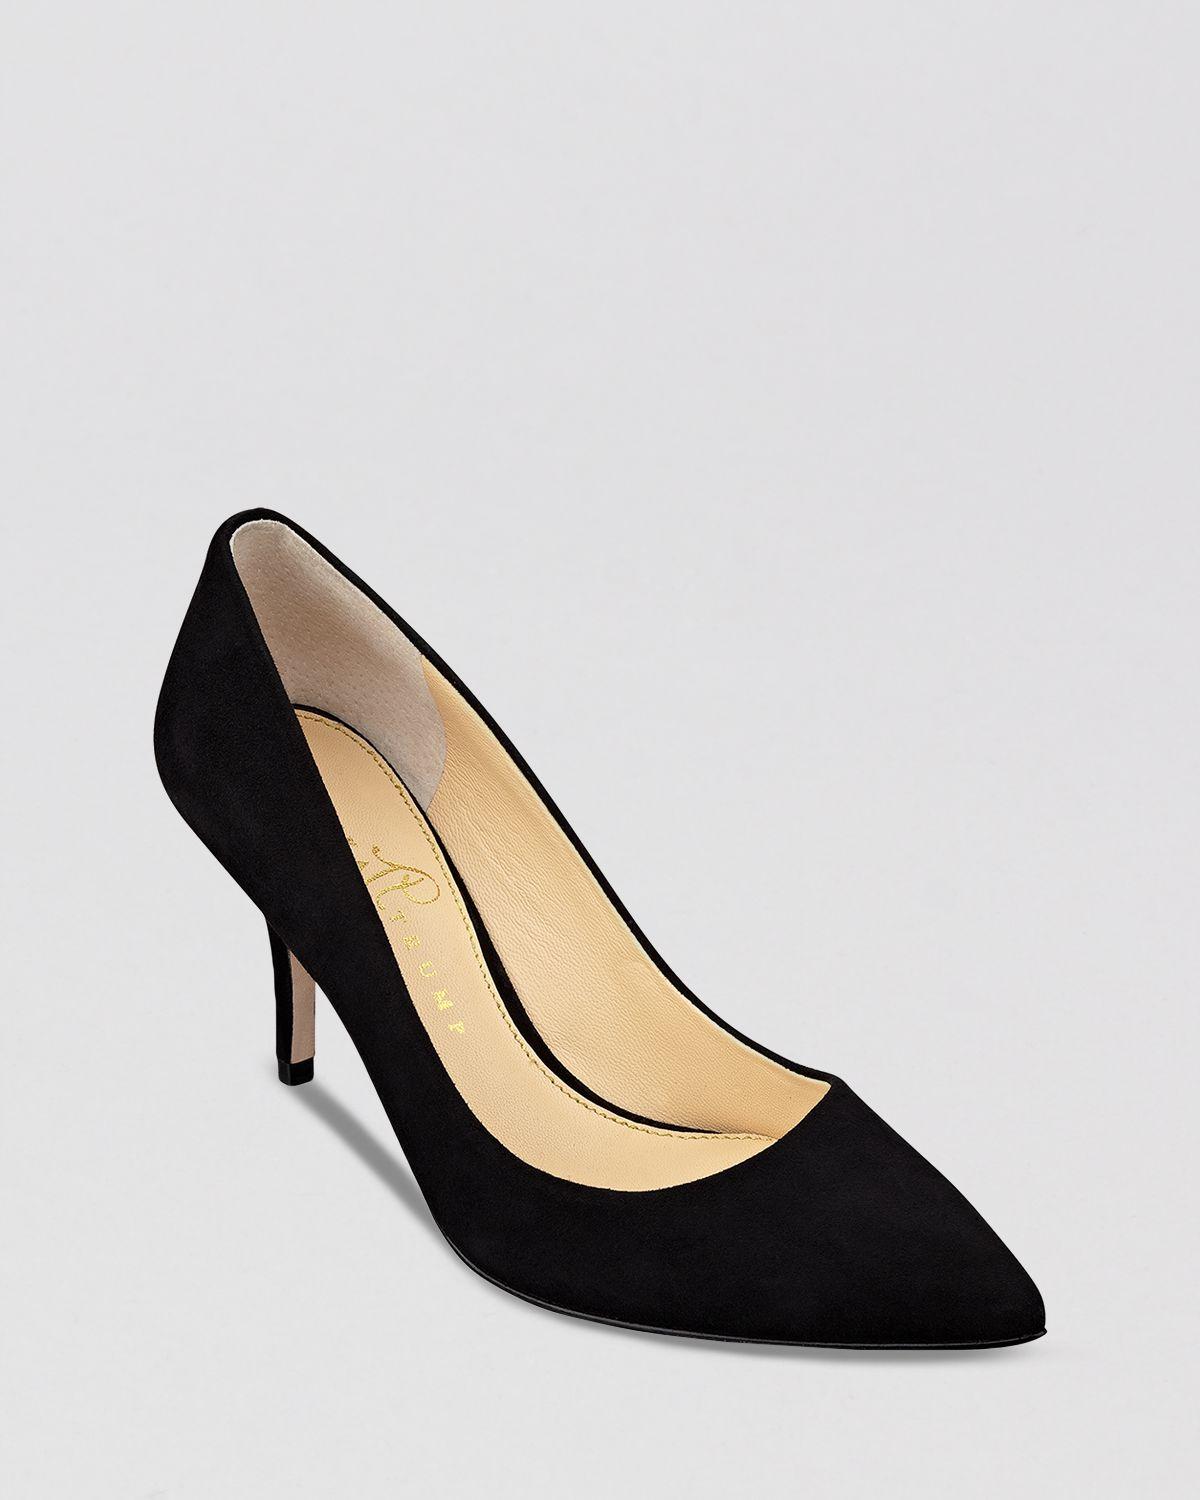 IVANKA TRUMP Pointed Toe Pumps - Natalie High Heel | Bloomingdale's